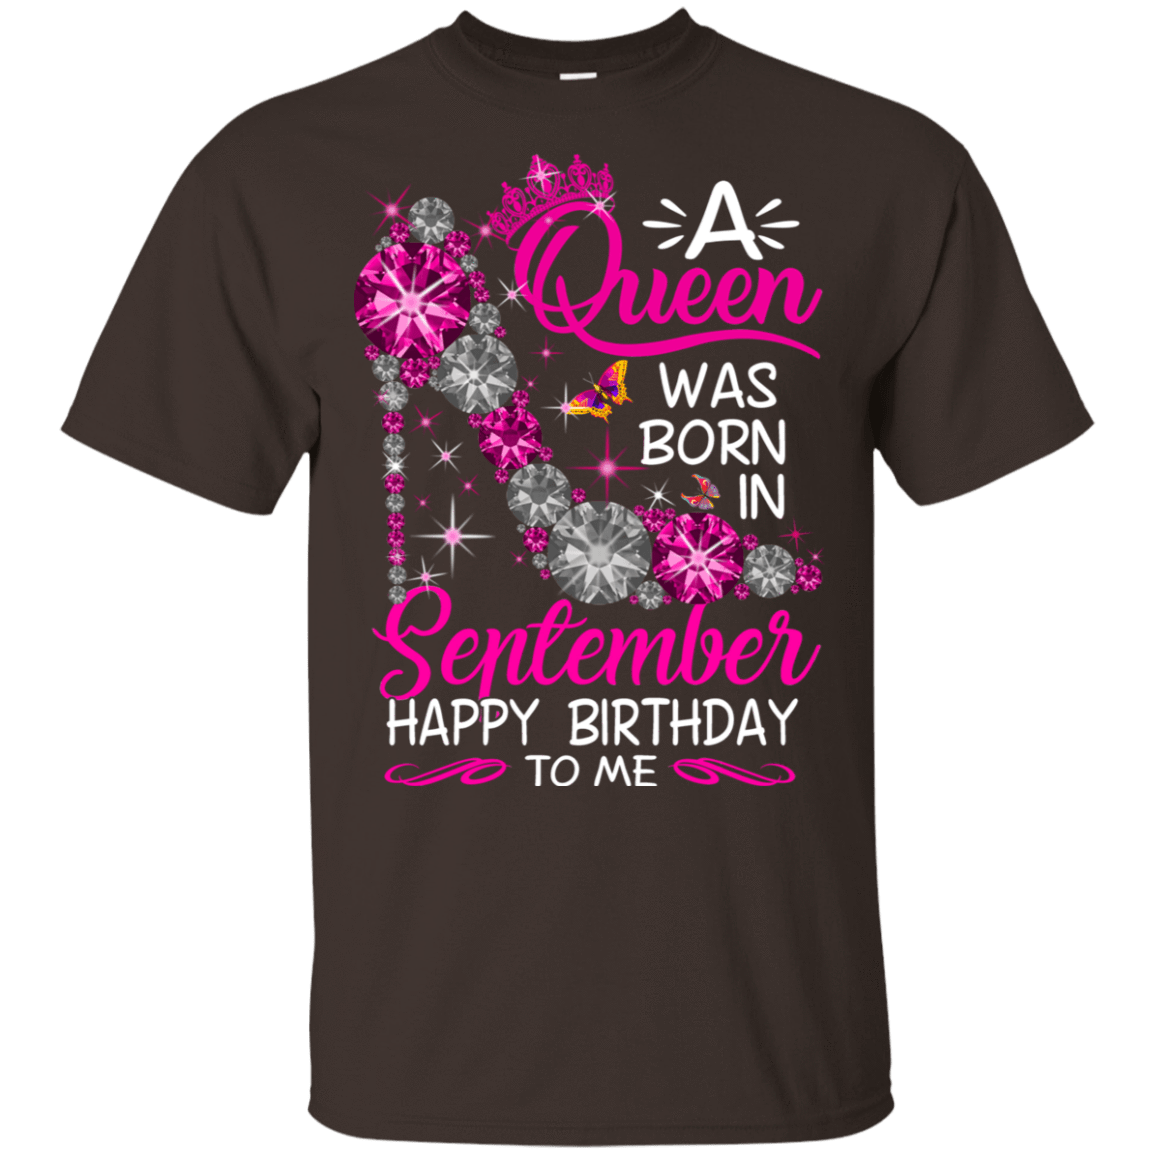 A Queen Was Born In September Happy Birthday To Me T-Shirts & Hoodies 22-2283-76451785-12087 - Tee Ript